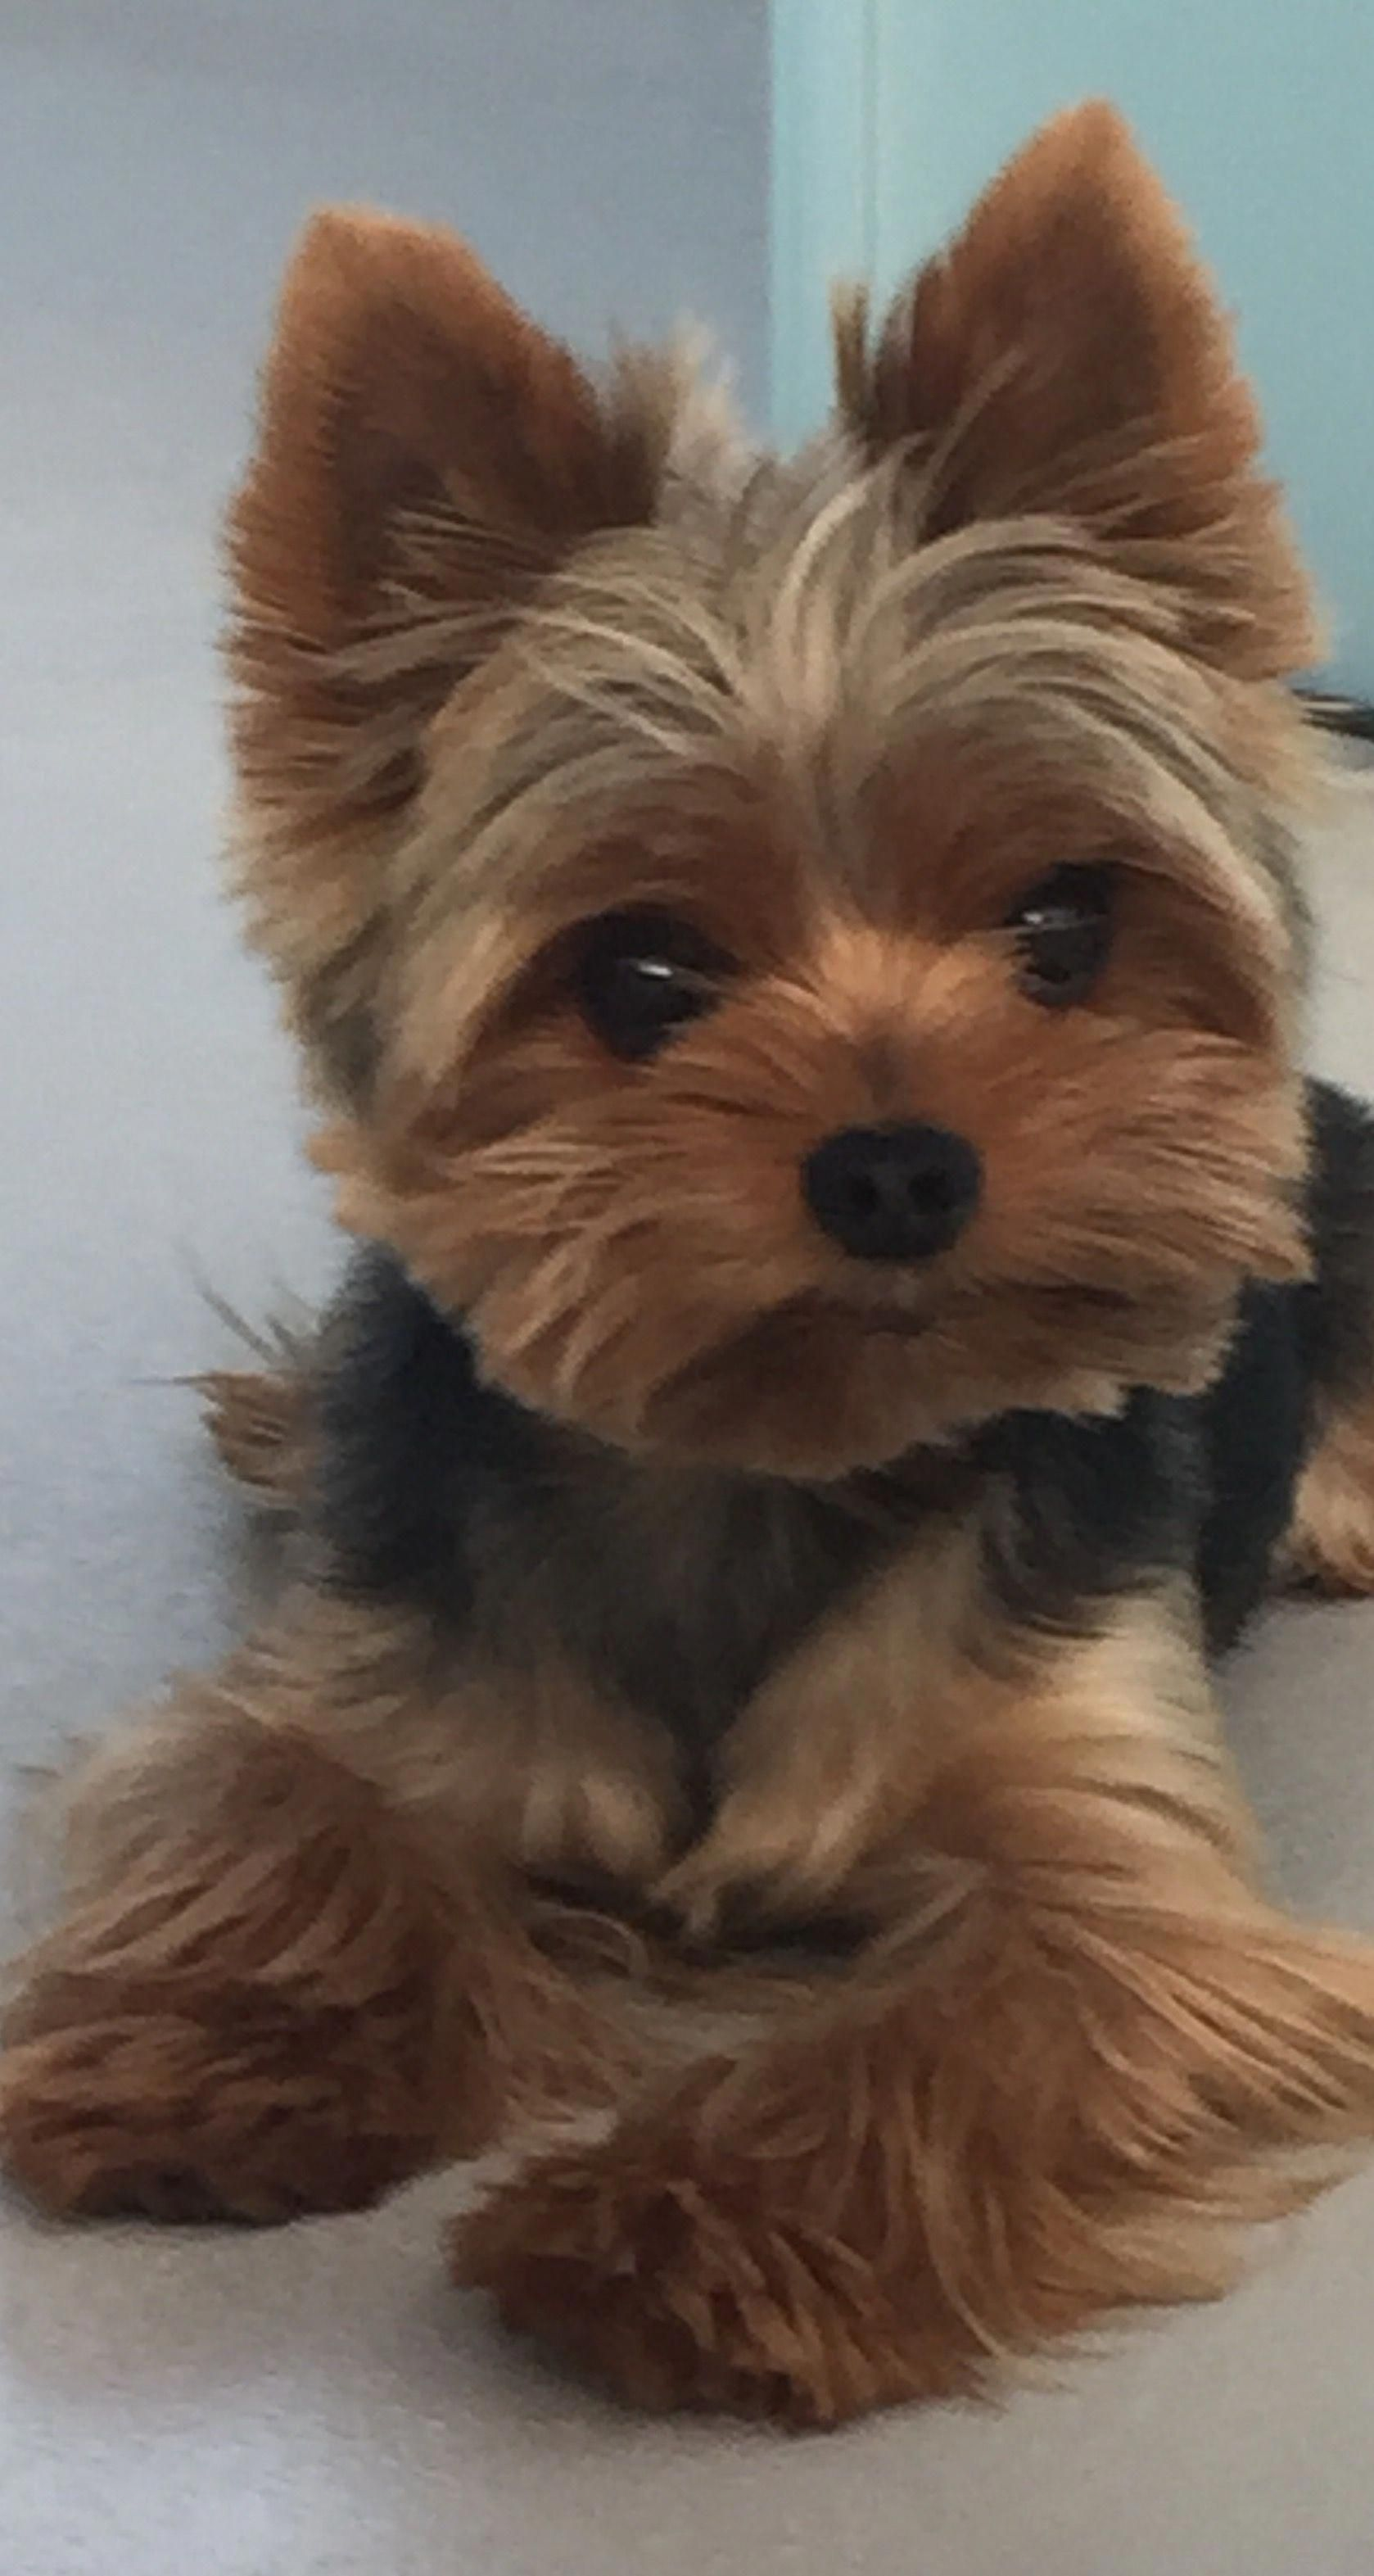 My Sweetheart Ellyot Yorkshireterrier Yorkiepuppycut Yorkie Puppy Cute Small Dogs Yorkshire Terrier Dog